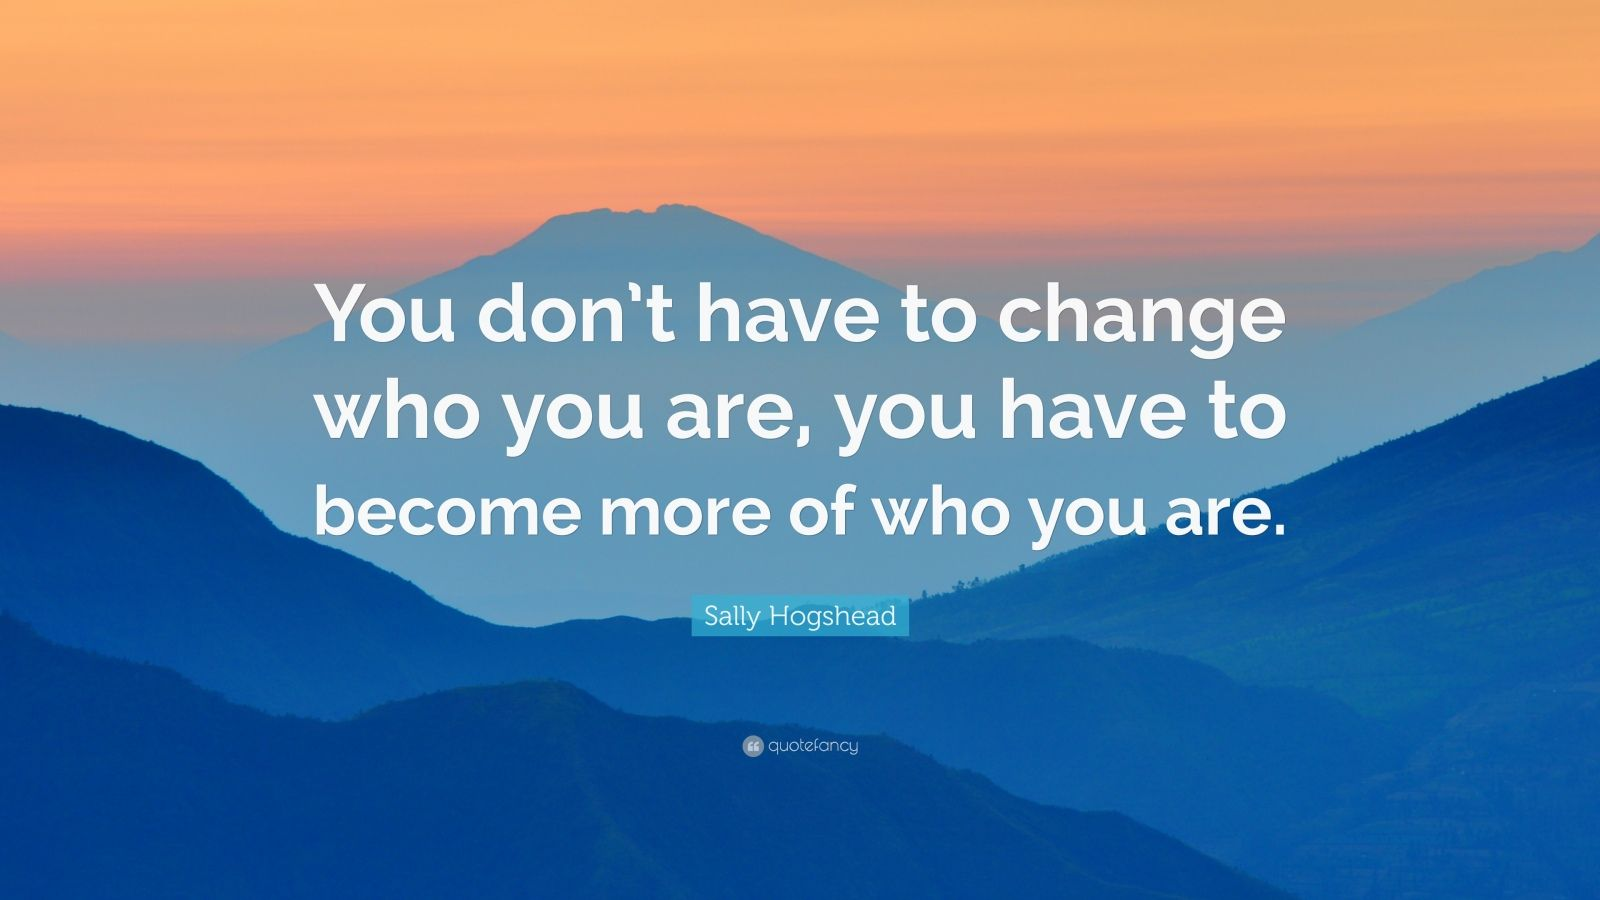 """Sally Hogshead Quote: """"You don't have to change who you are. you have to become more of who you are."""" (18 wallpapers) - Quotefancy"""